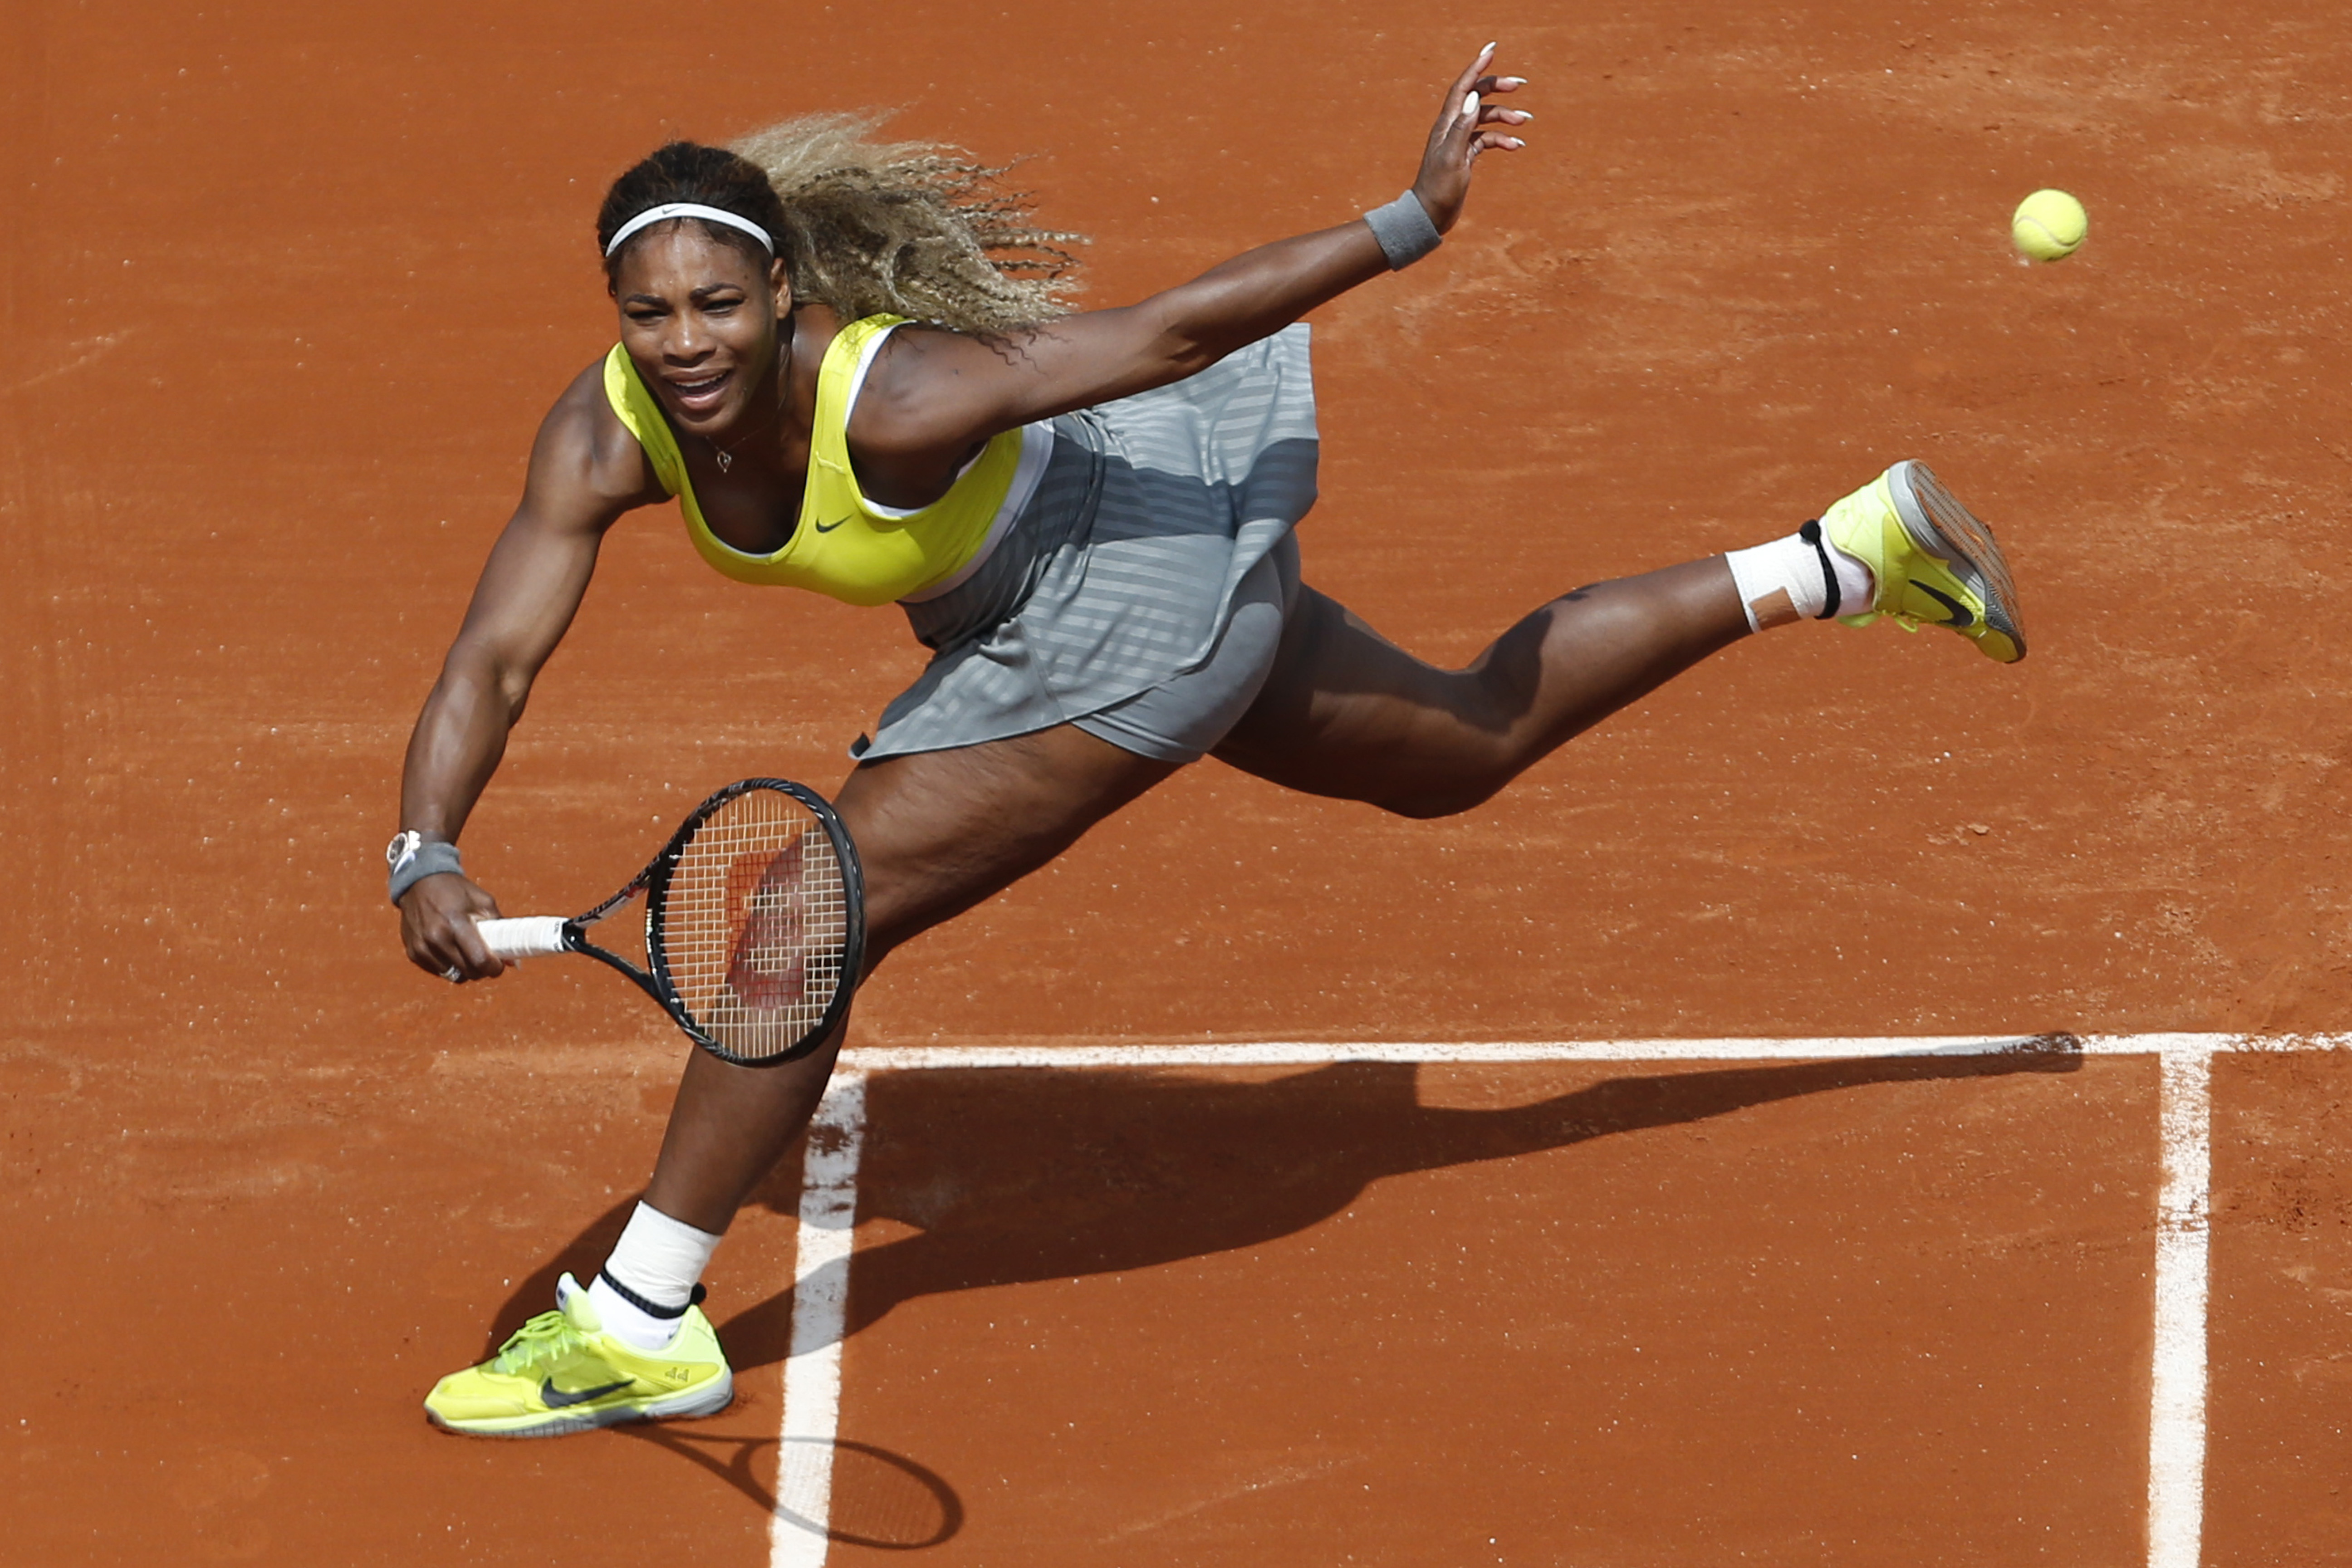 FILE - In this May 25, 2014, file photo, Serena Williams makes a return against Alize Lim, of France, during a first round match at the French Open tennis tournament in Paris, France. Serena Williams will be competing in the 2015 French Open tennis tourna